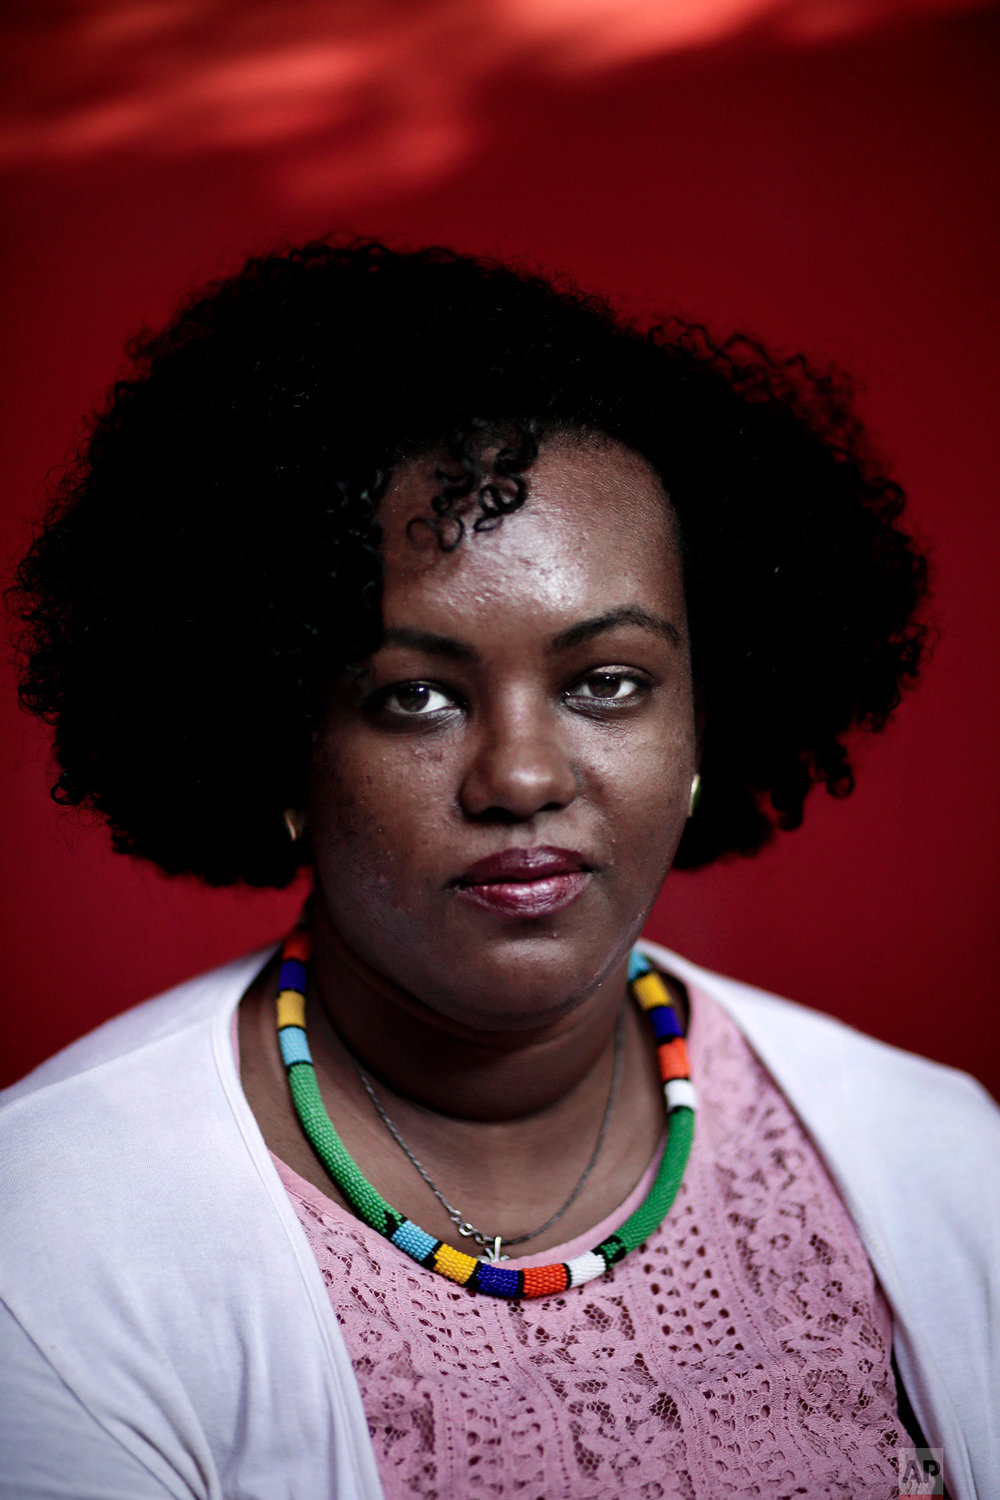 Nubian activist Fatmah Imam poses for a photograph in Cairo, Egypt. (AP Photo/Nariman El-Mofty)